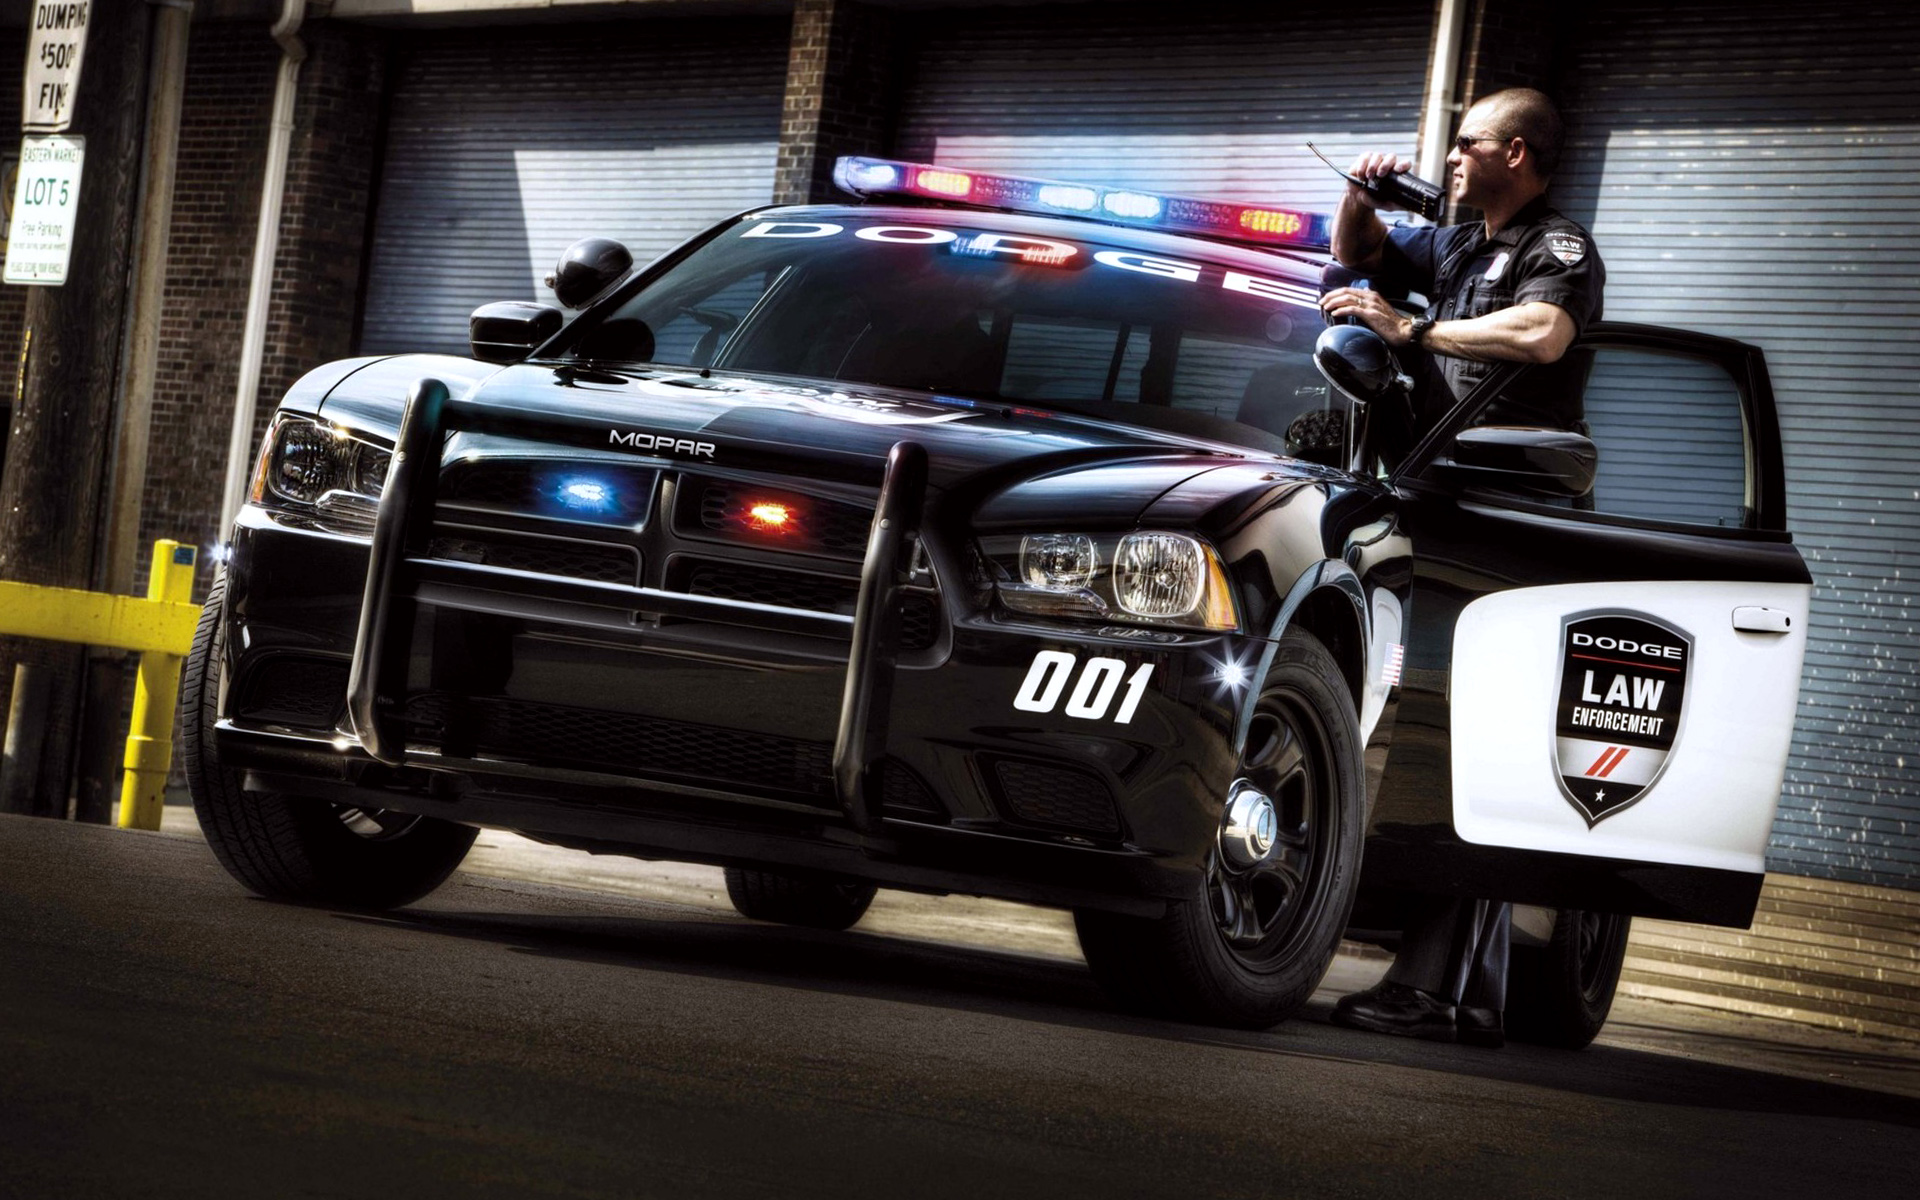 Category Cars Wallpapers Cool Police Car Action  1920x1200 px 1920x1200